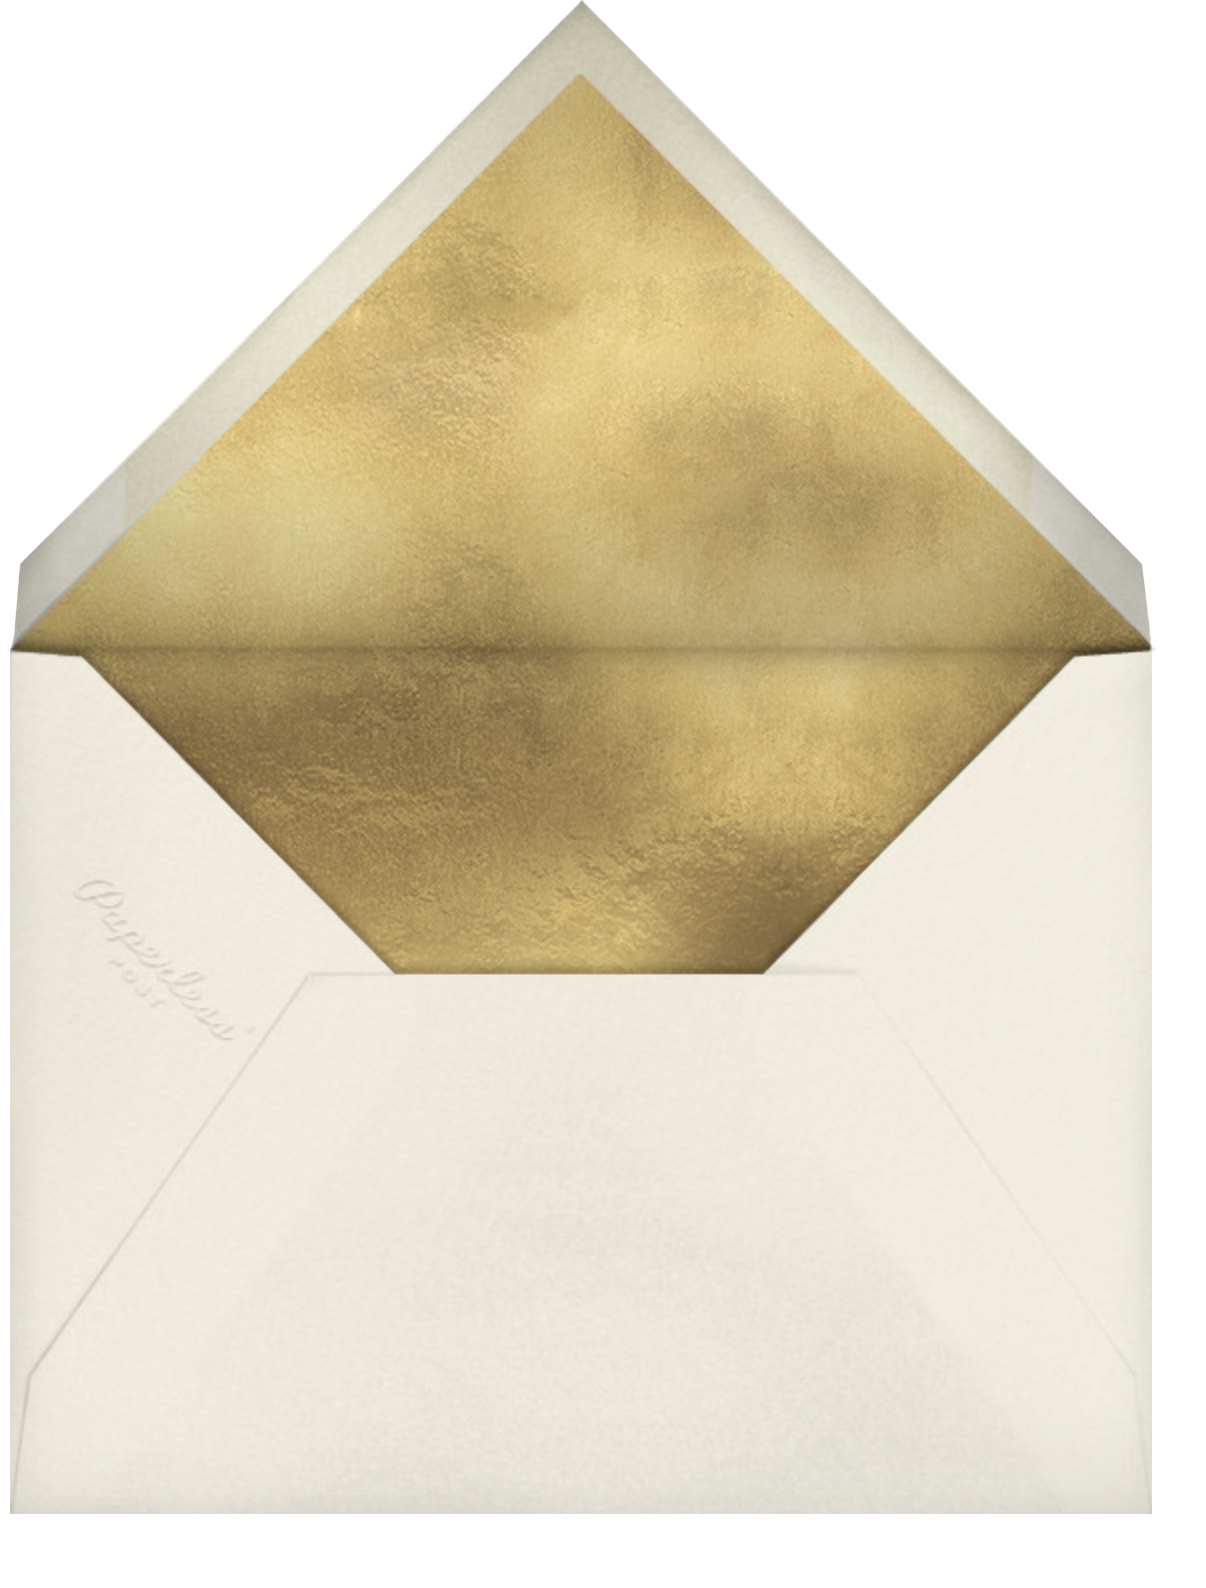 Neve - Peacock - Kelly Wearstler - Hanukkah - envelope back